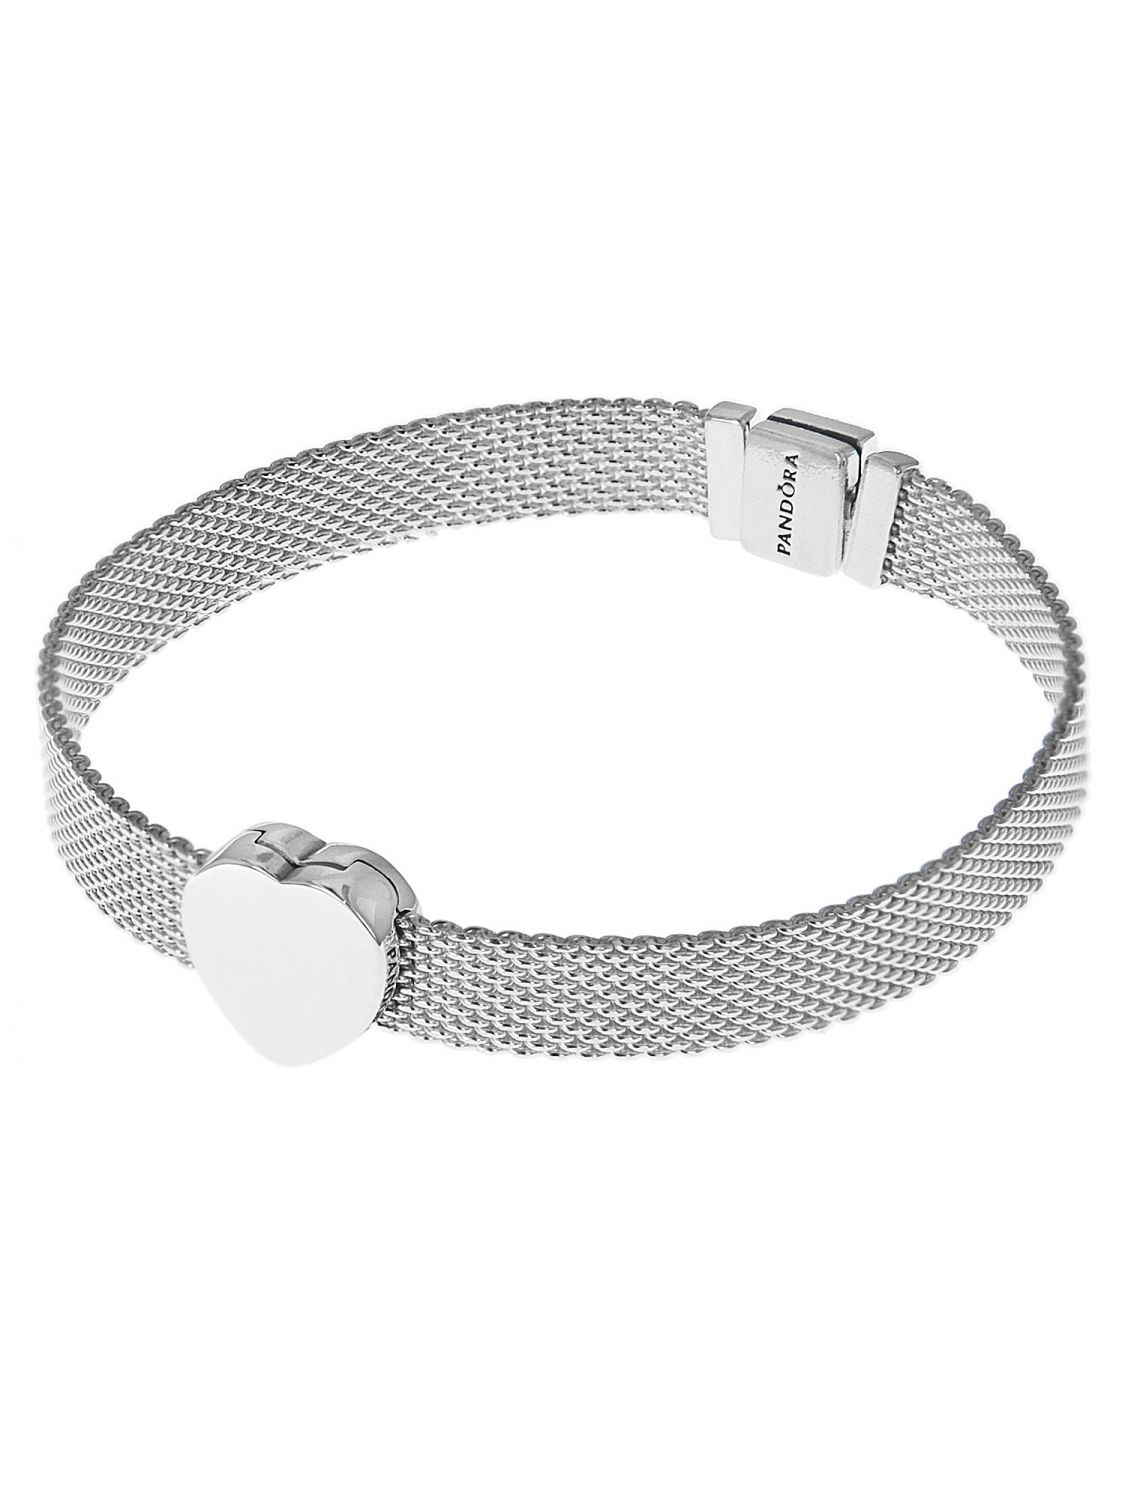 Pandora 75333 Reflexions Silver Women's Bracelet With Heart Clip Regarding Current Pandora Reflexions Mesh Choker Necklaces (View 12 of 25)